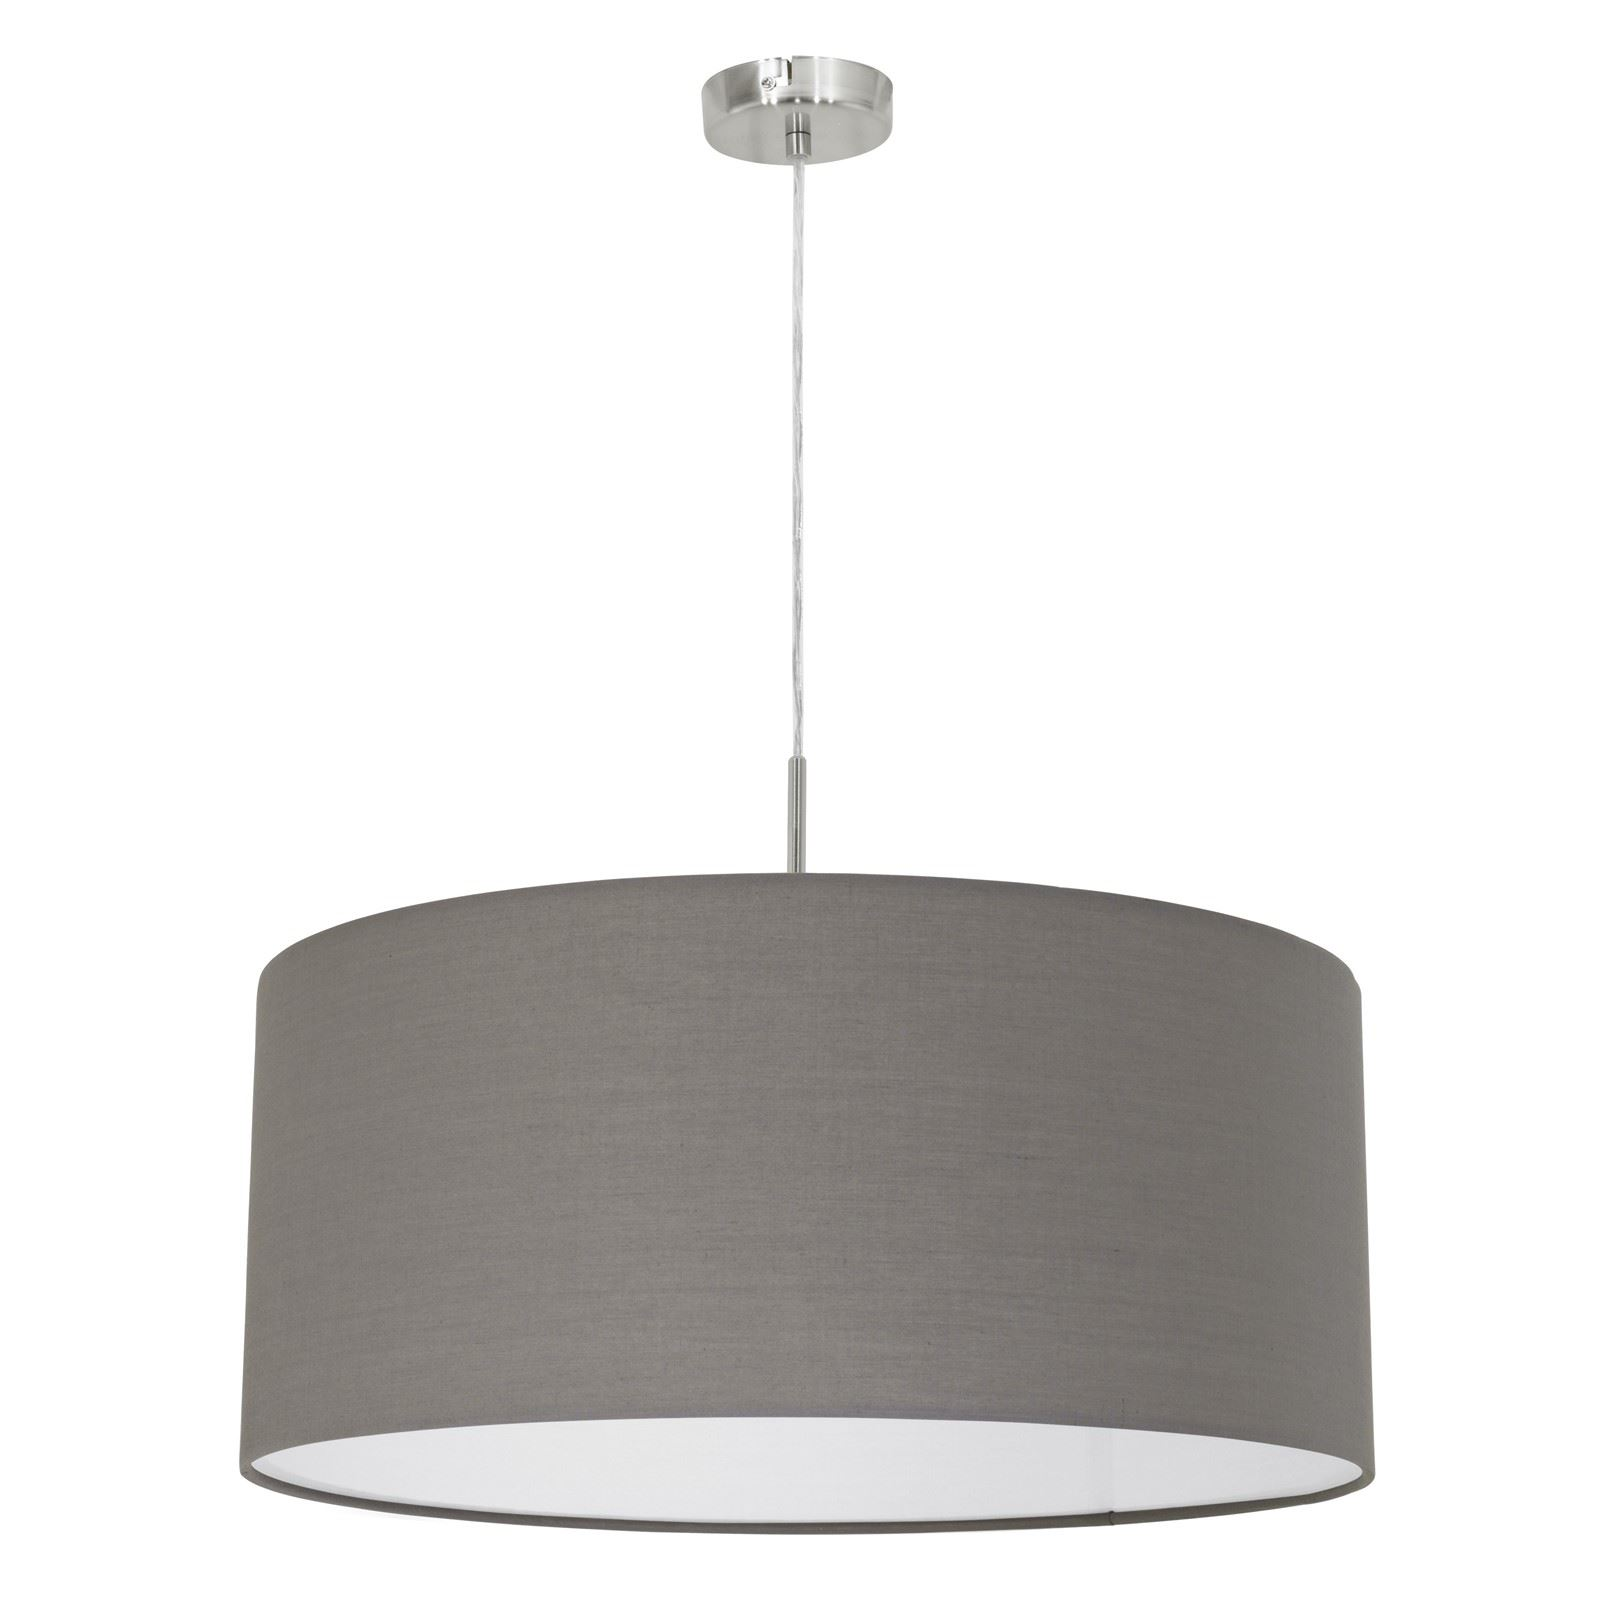 Pasteri Hanging Pendant Light Pendant Lamp Fabric Matt Brown Shade